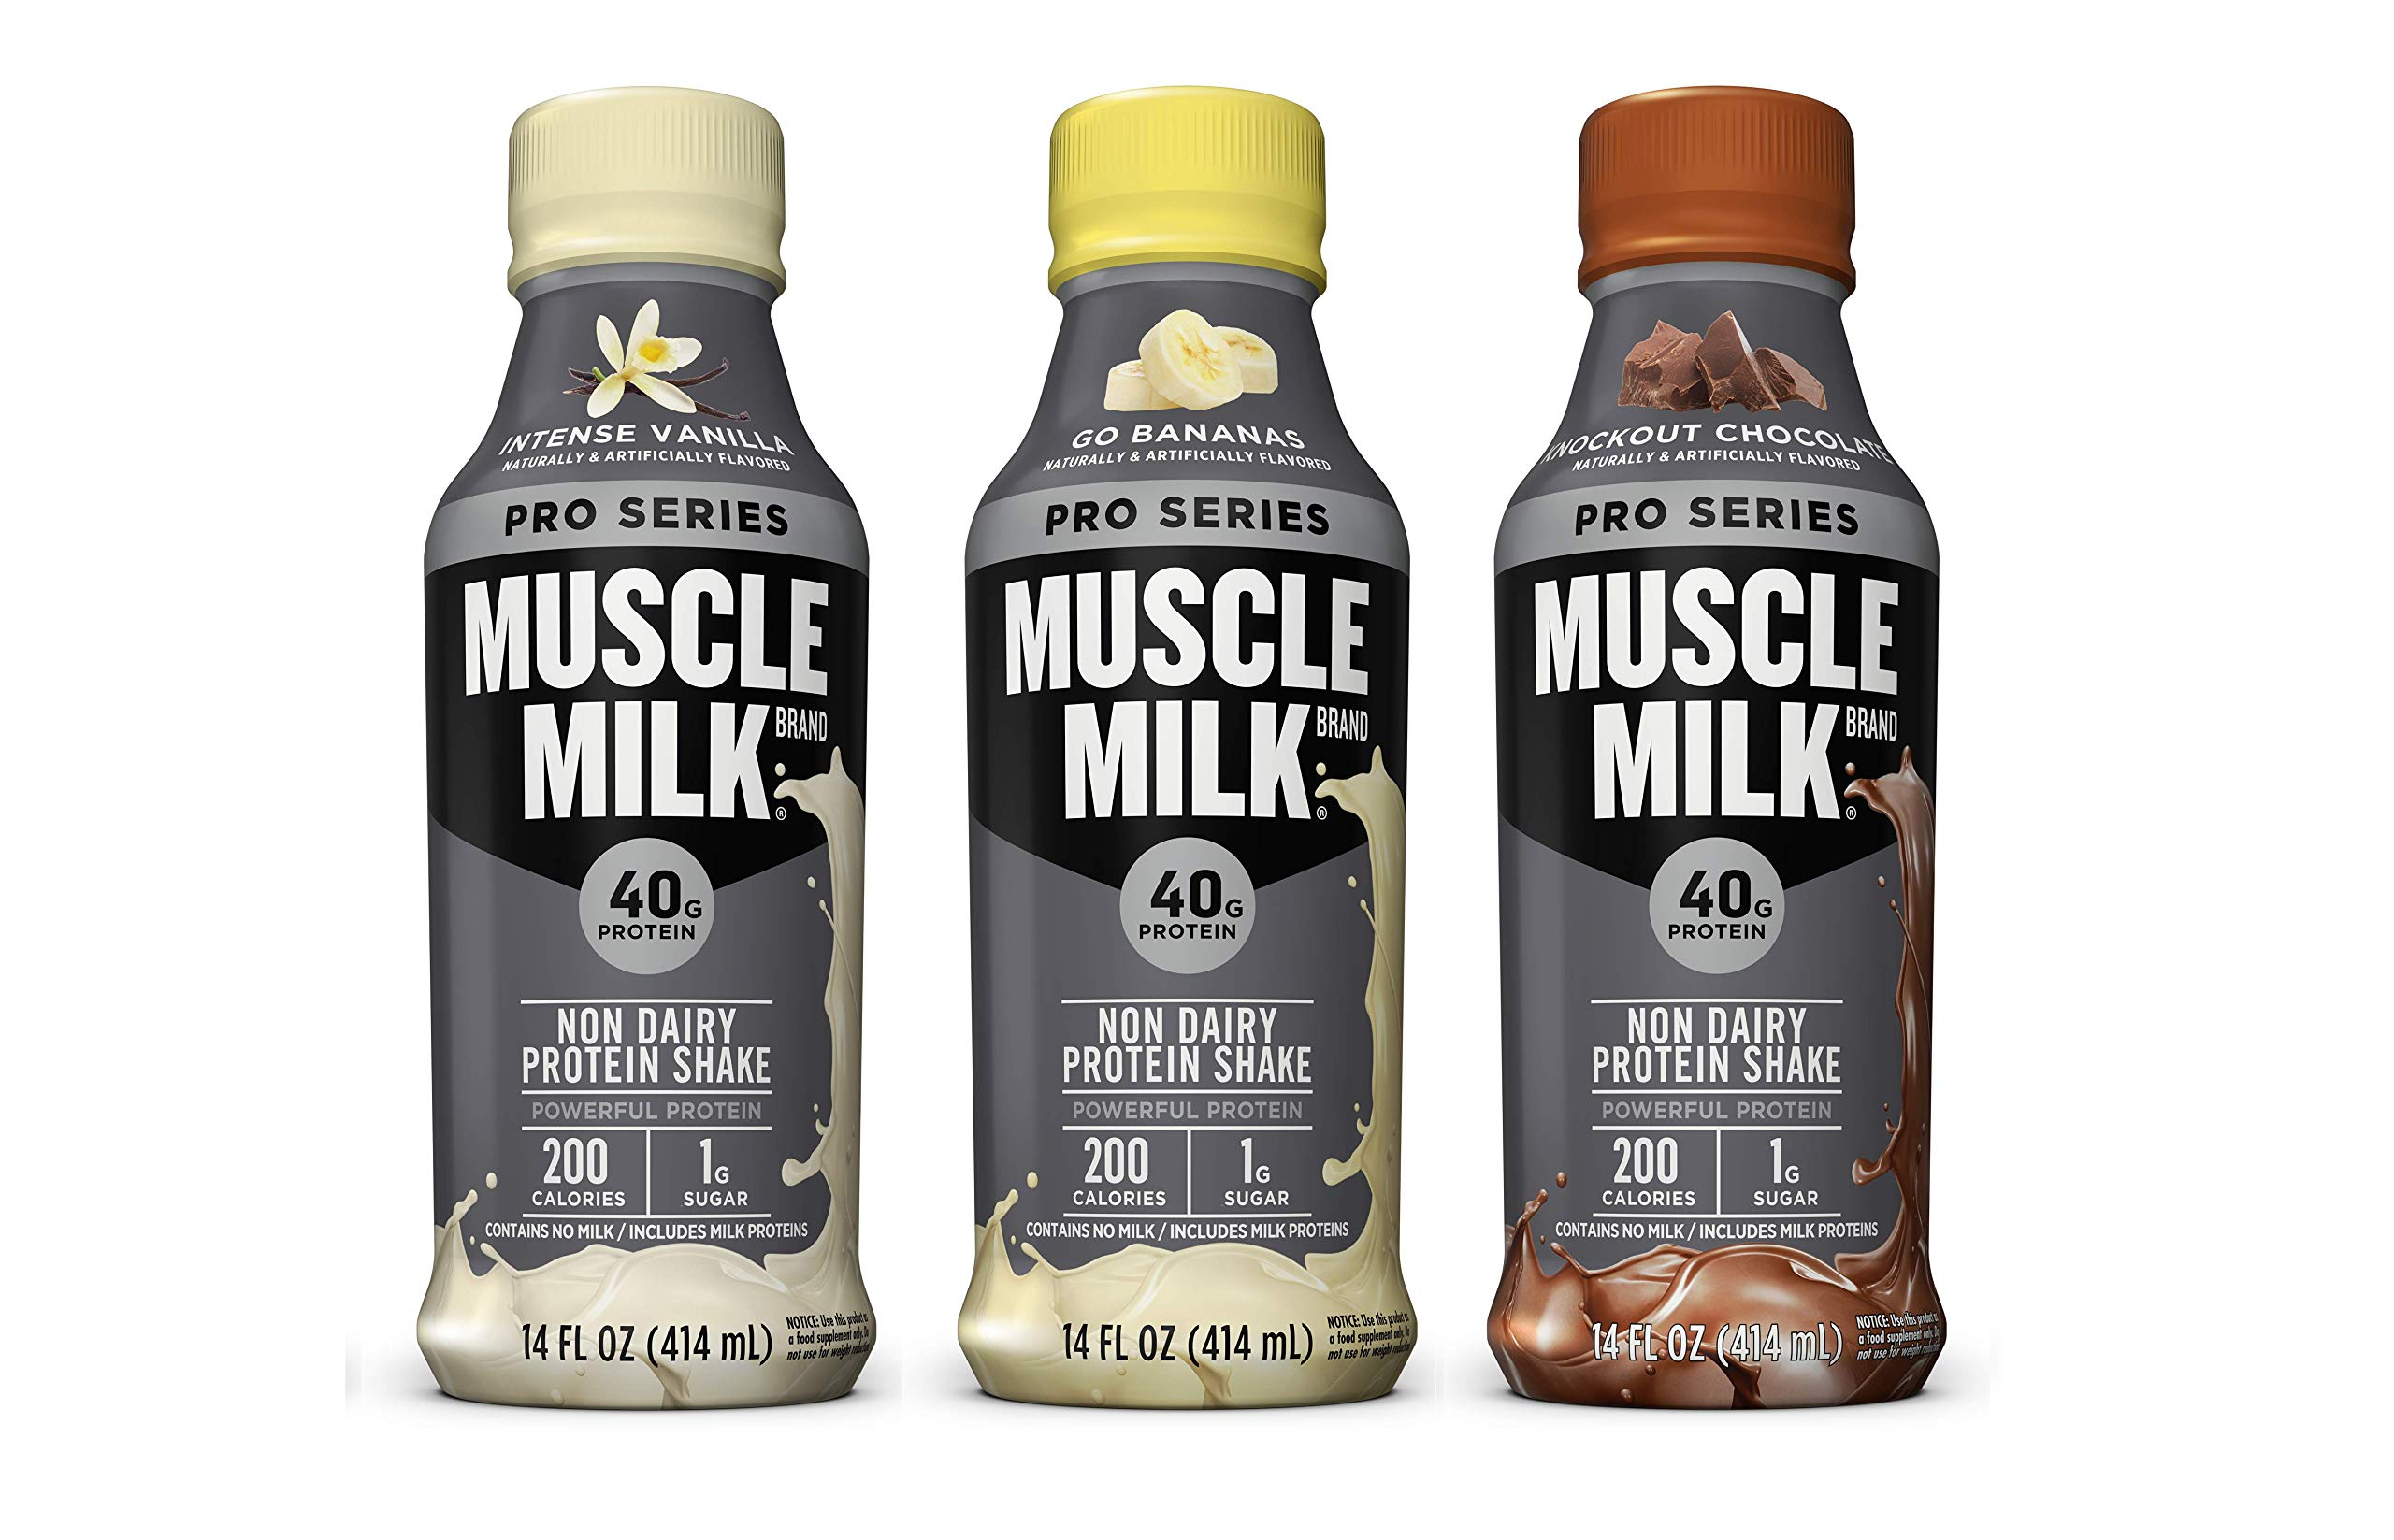 Muscle Milk Pro Series Non Dairy Protein Shake, 3 Flavor Variety Pack, 40g Protein, 14 FL OZ (Pack of 12)